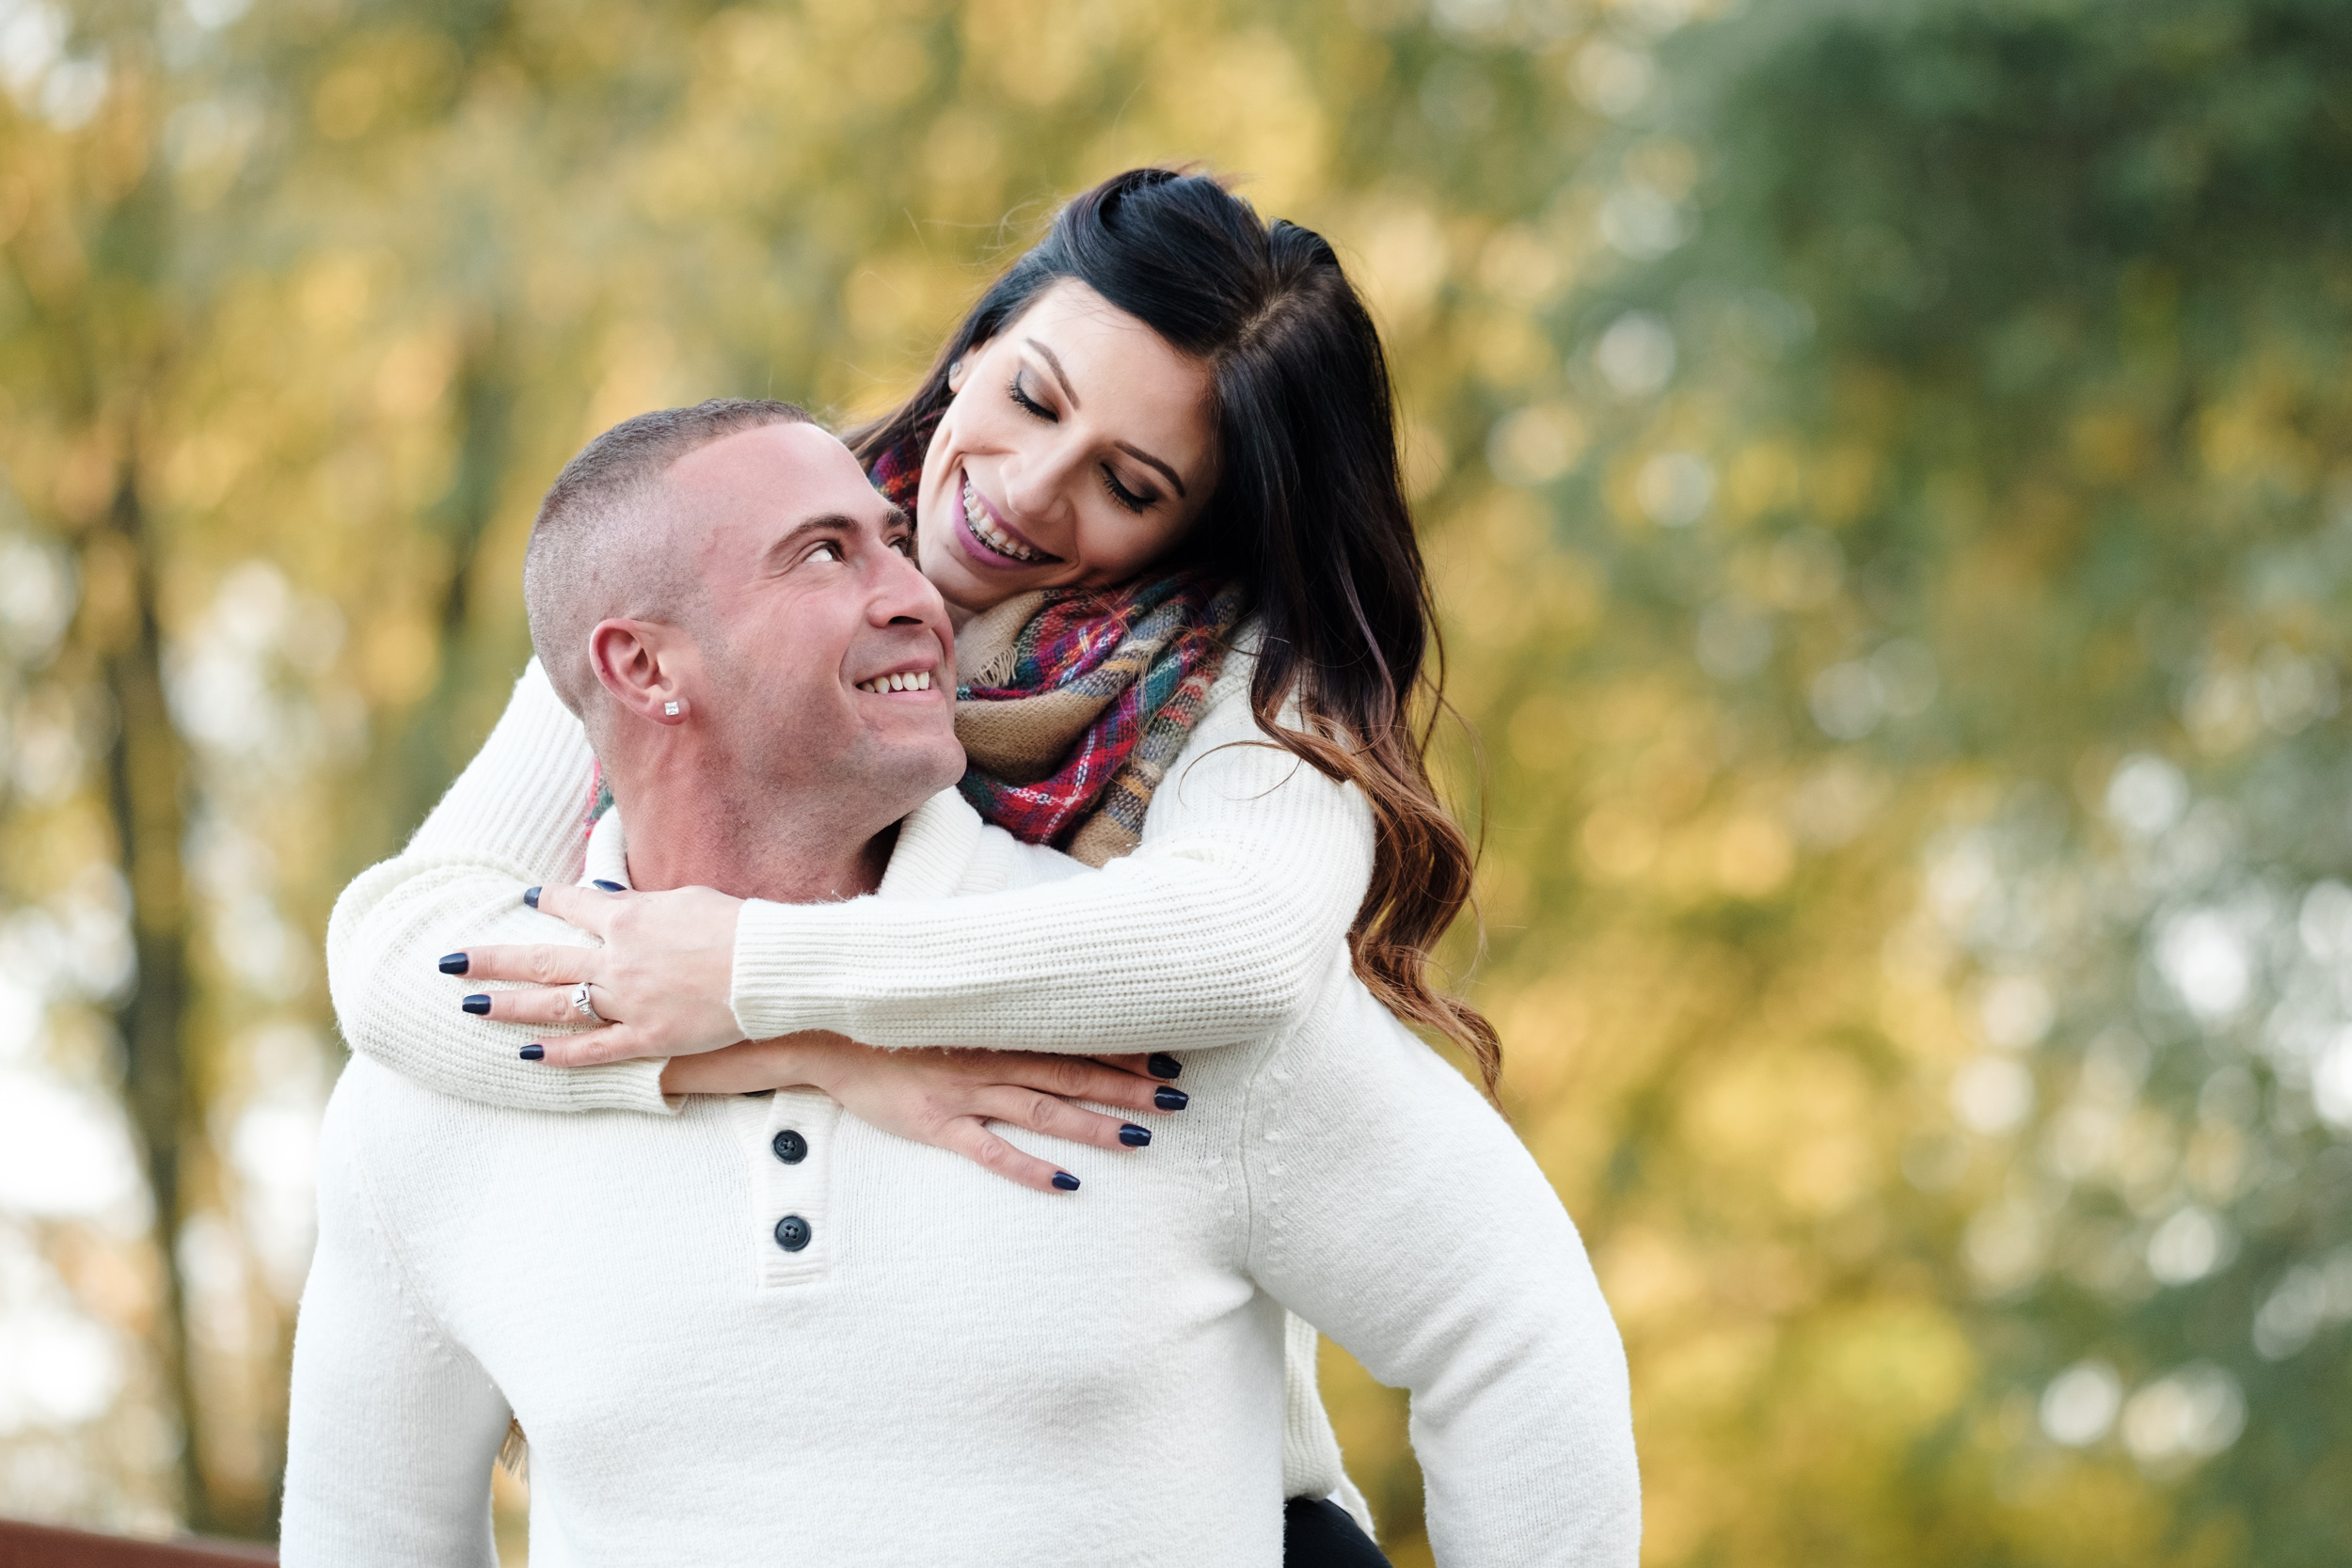 fall cozy engagement pictures outdoor sunset Loves Park, IL